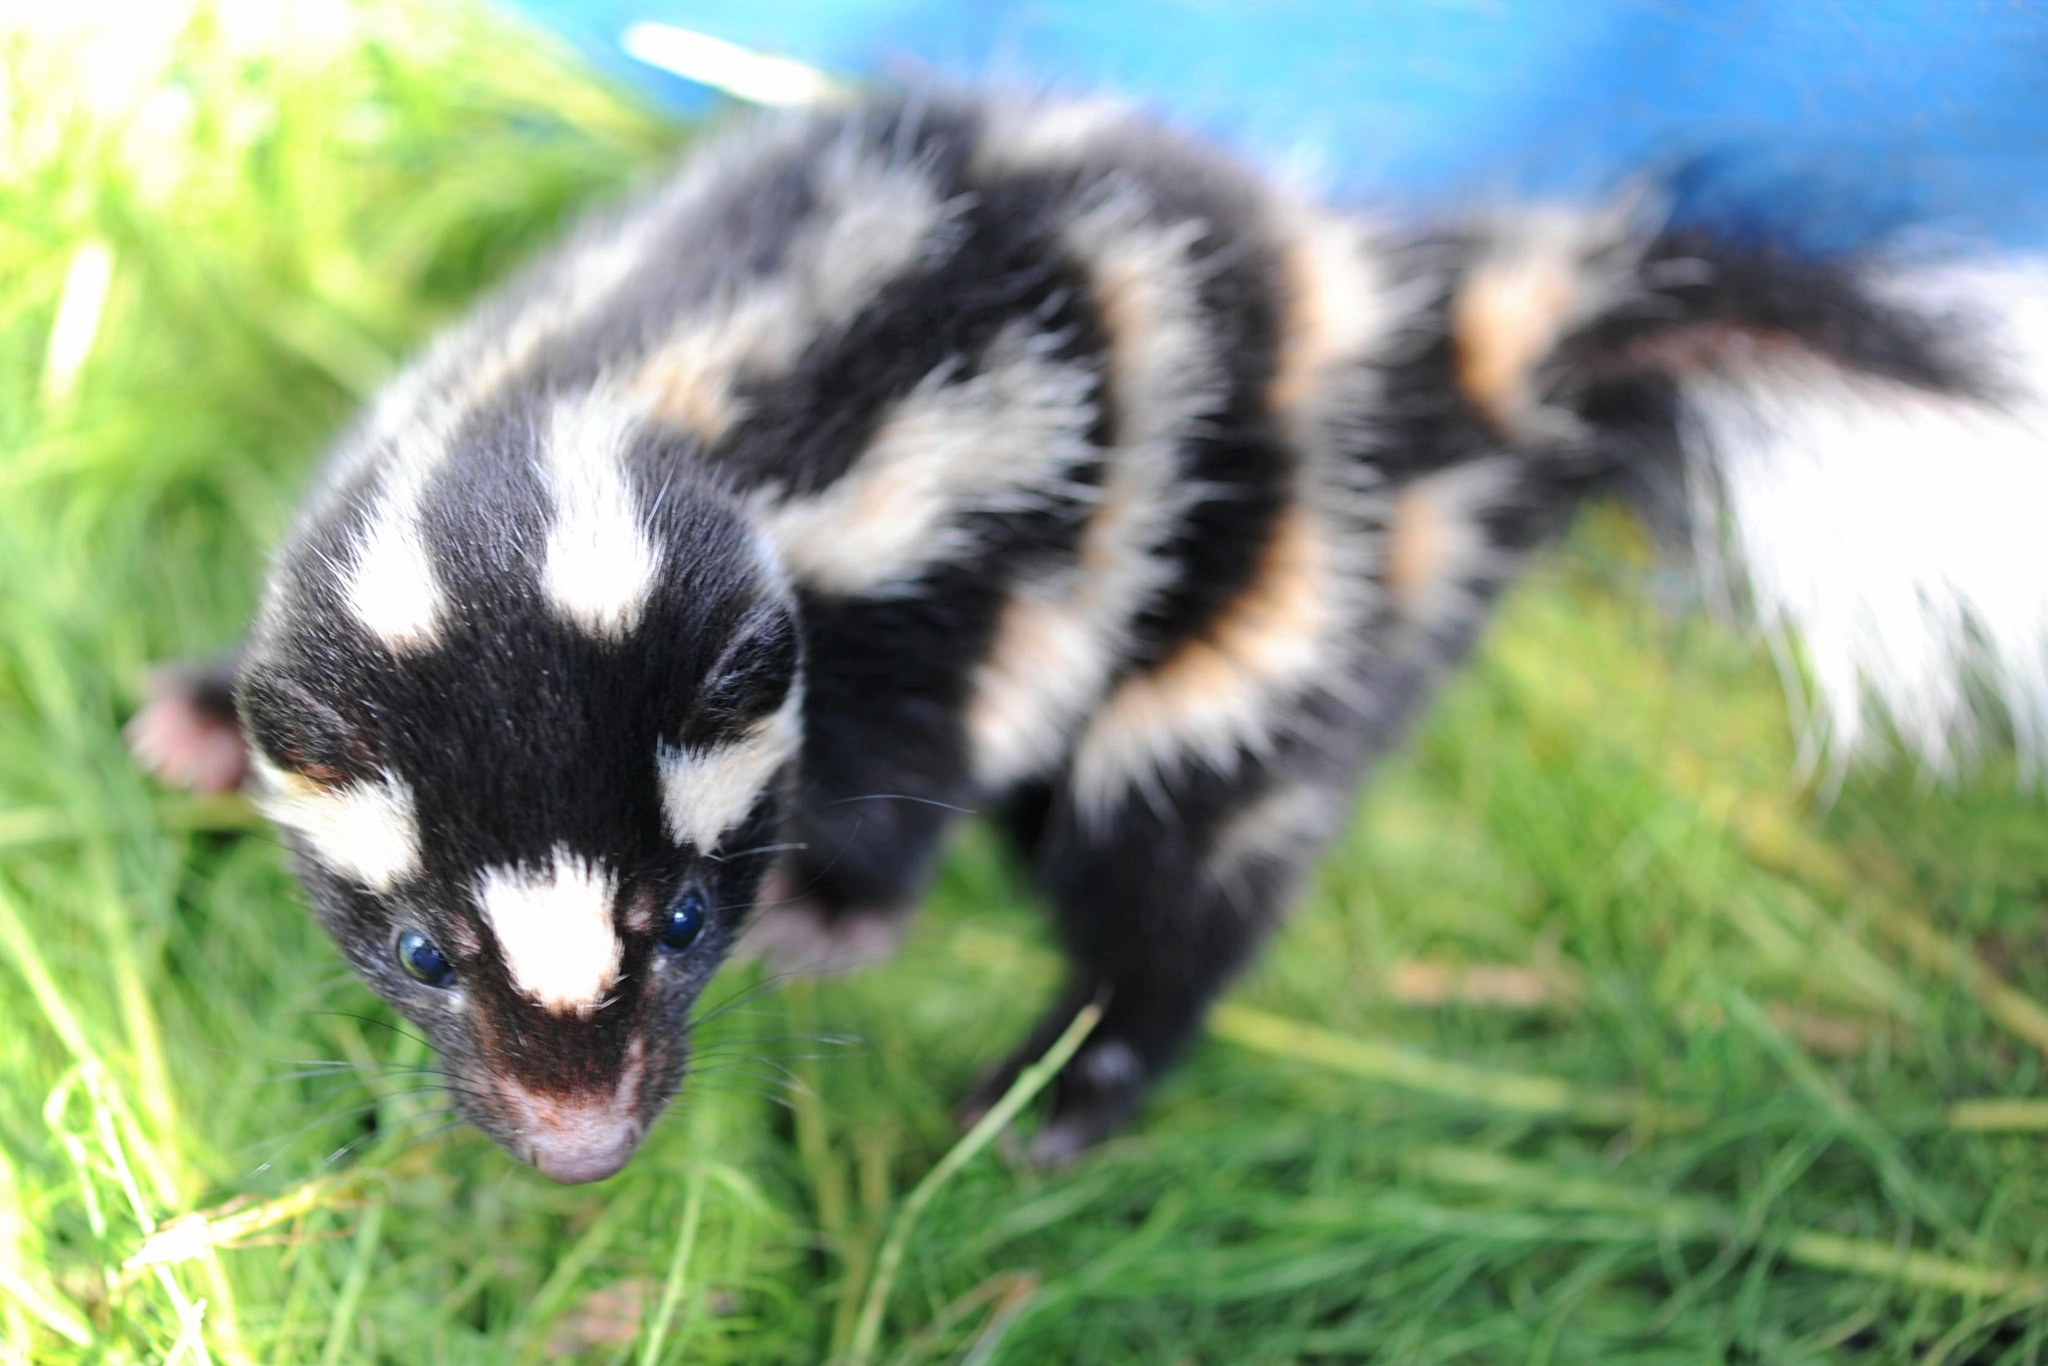 A juvenile spotted skunk.